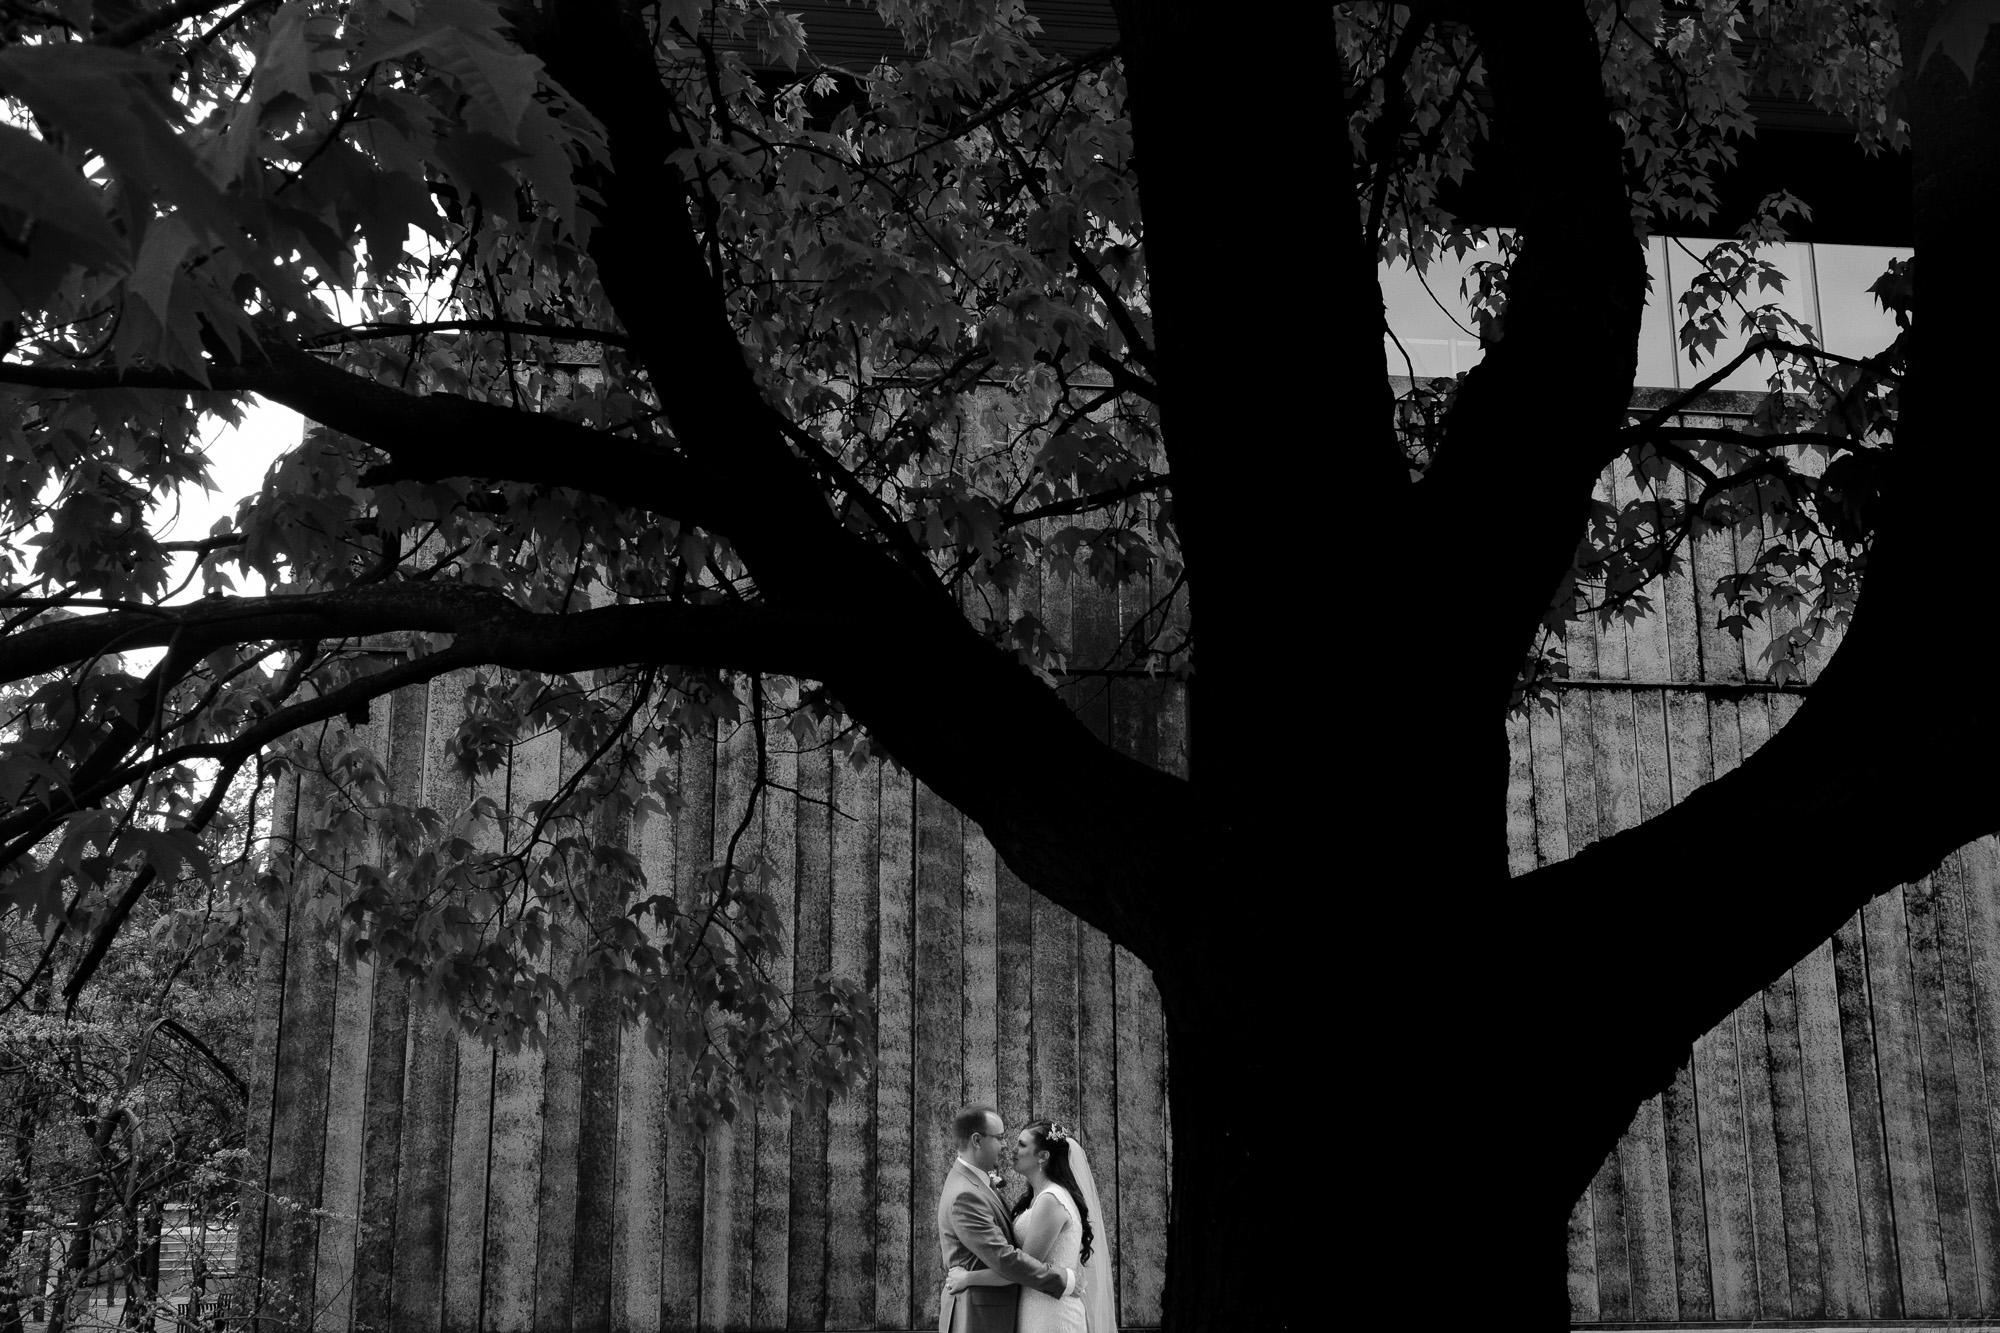 Cheri + Chris pose for a black and white wedding portrait on the grounds of University of Toronto Mississauga after their wedding ceremony at the Glenerin Inn.